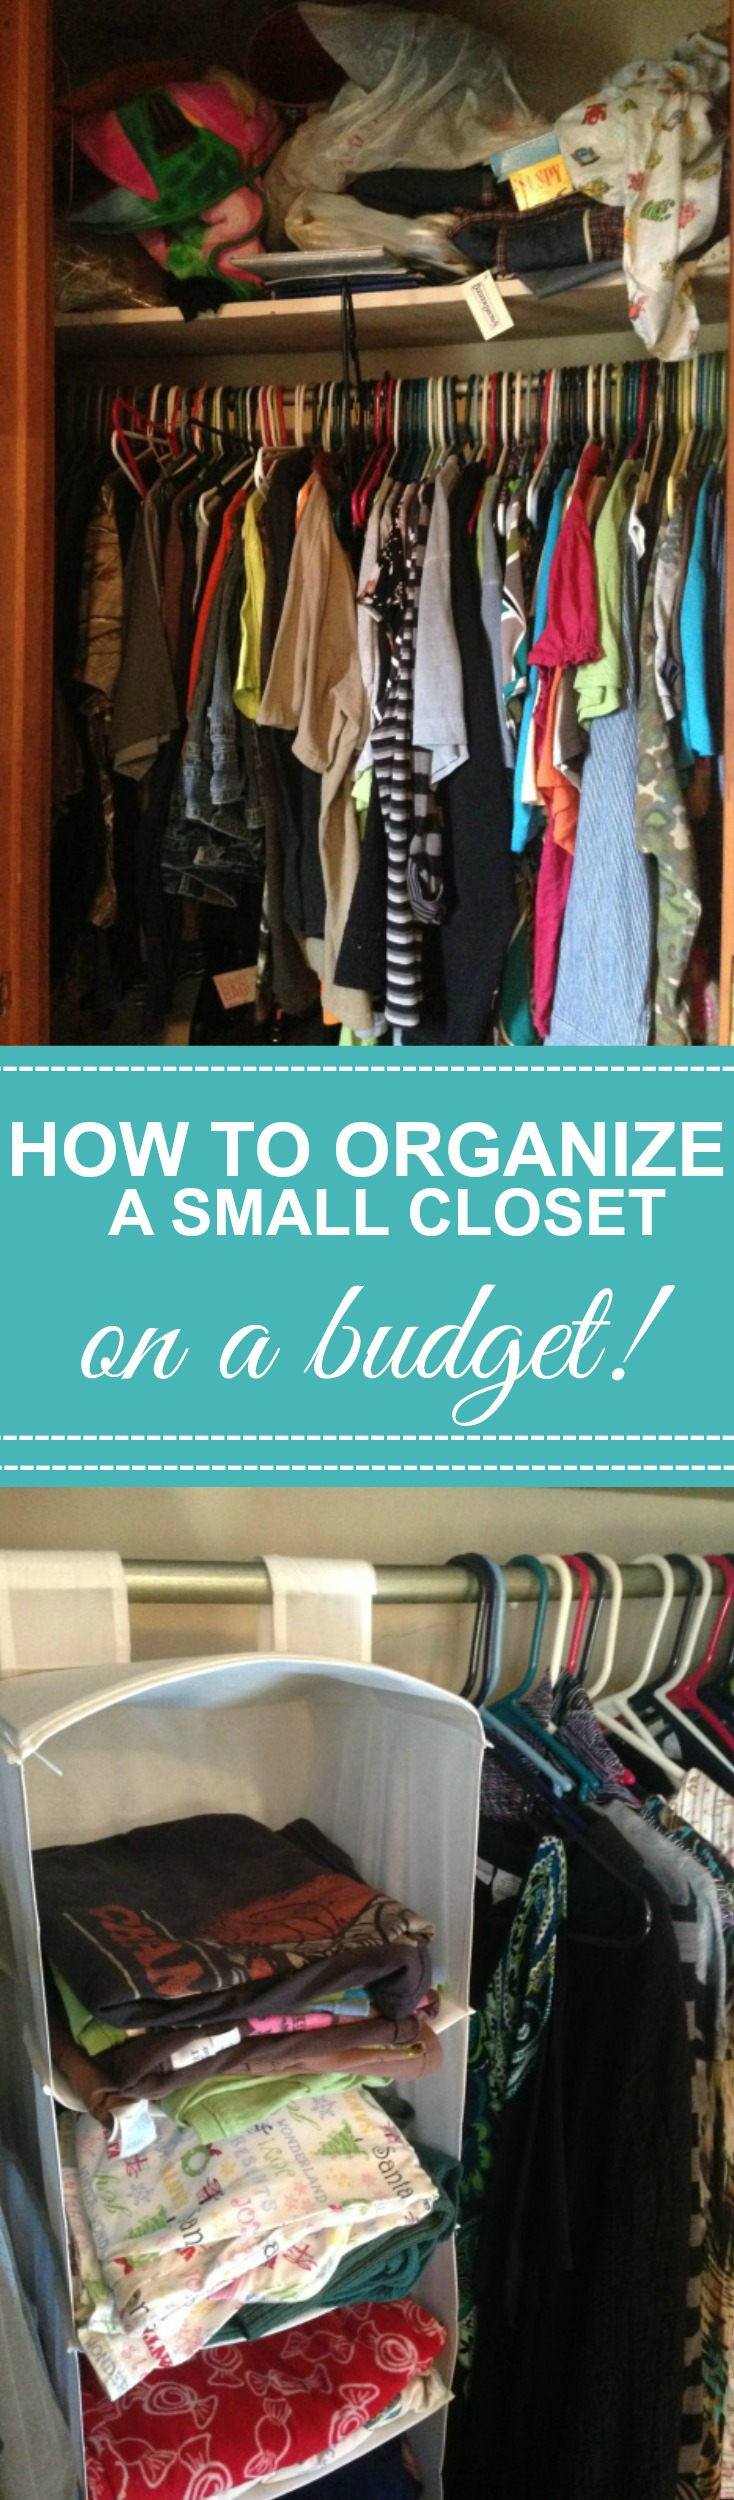 Closet organization tips on a budget, with organization storage solutions.